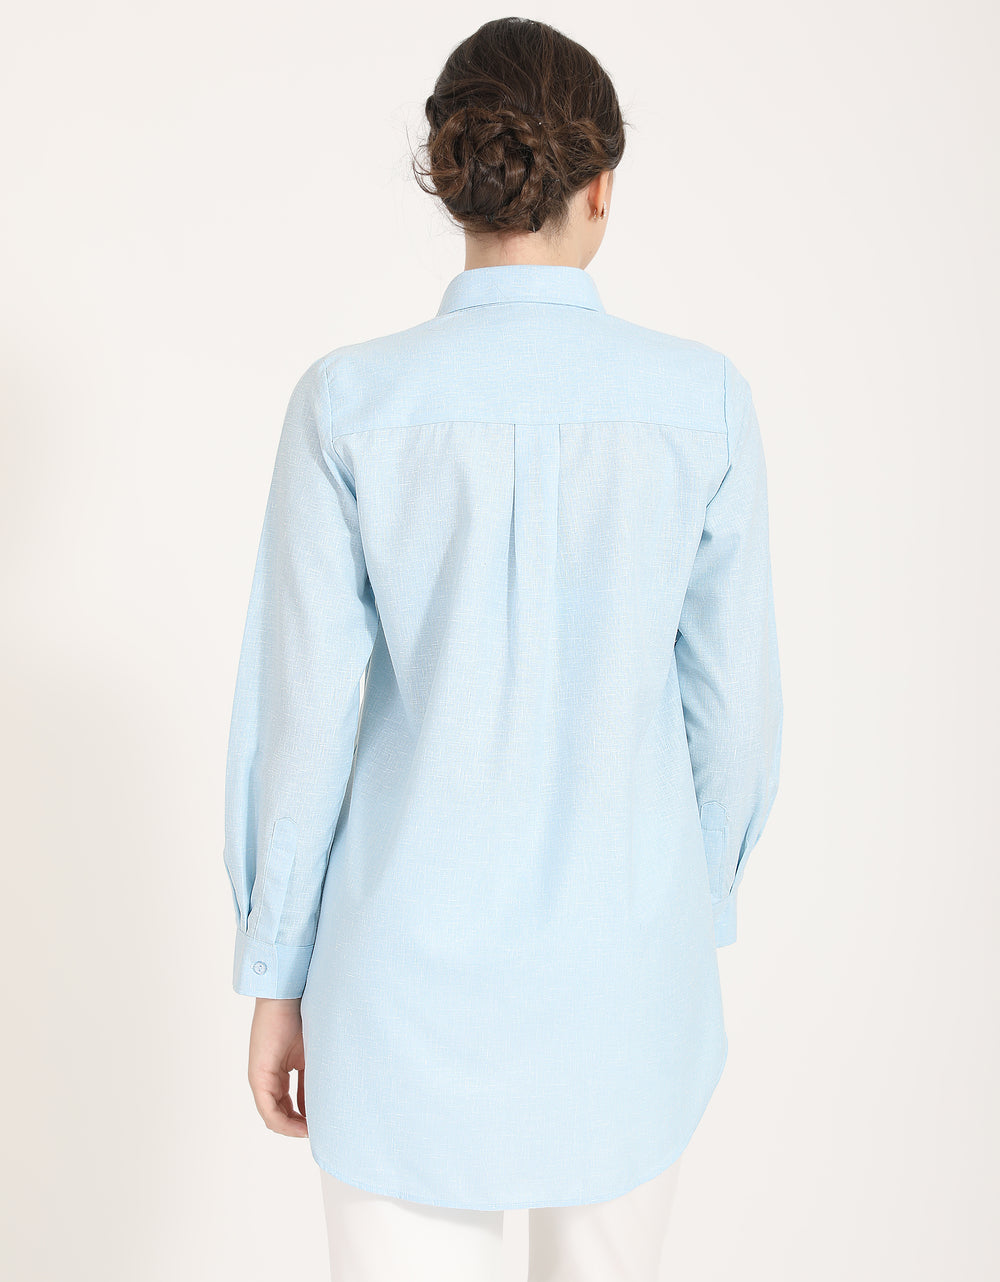 Citra Blouse (Baby Blue)